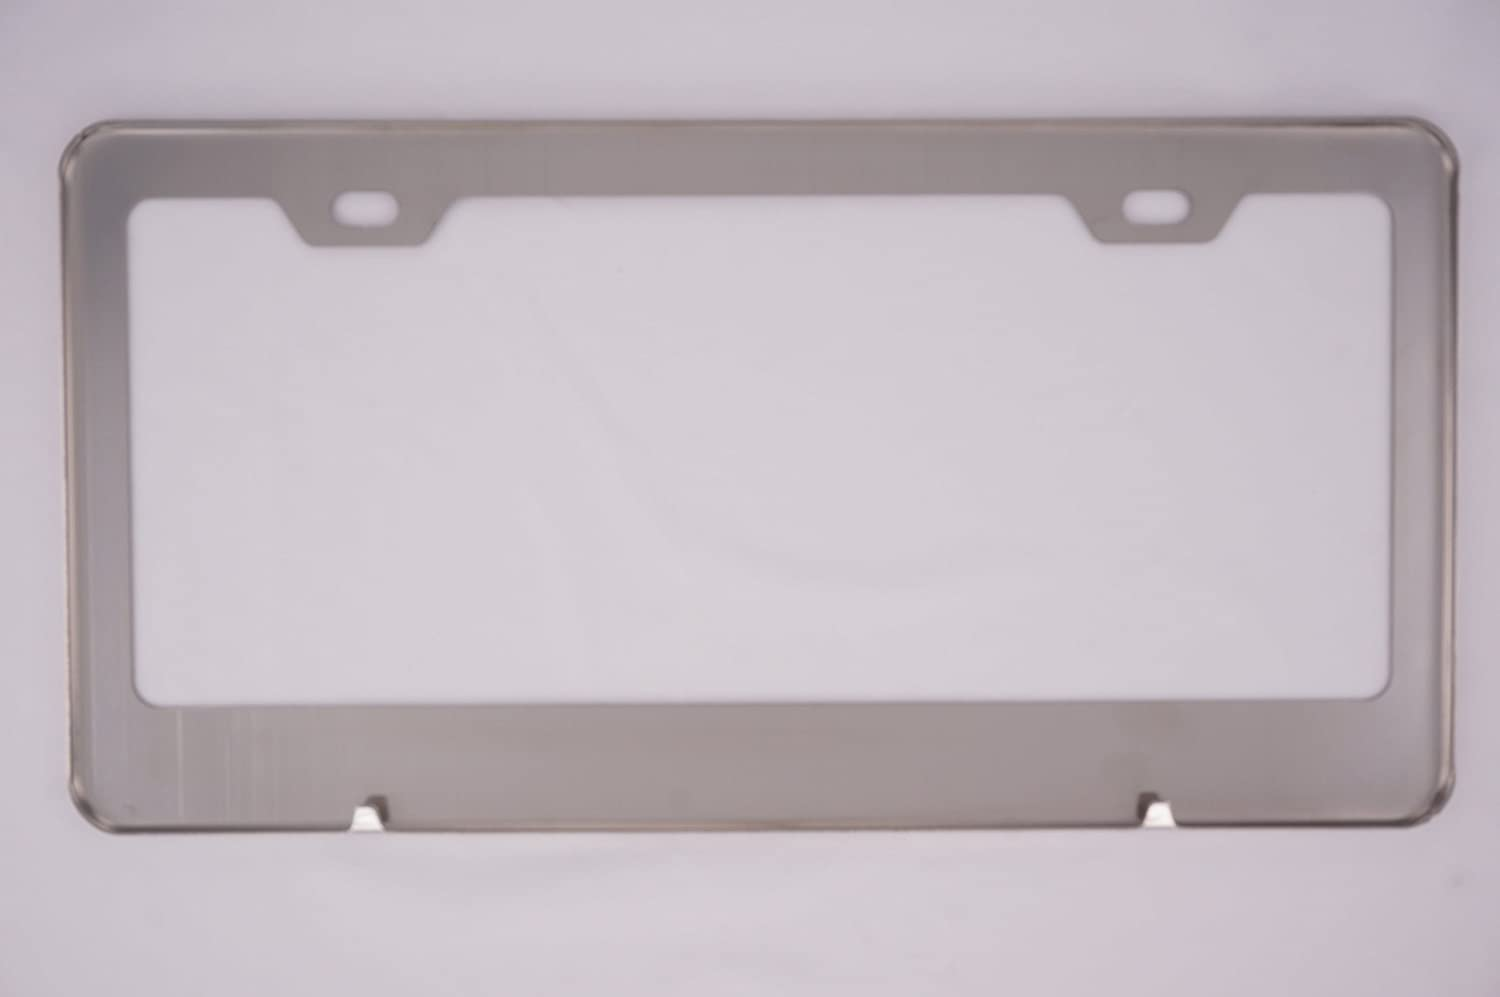 Amazon.com: Audi Q5 Chrome License Plate Frame with Caps: Automotive